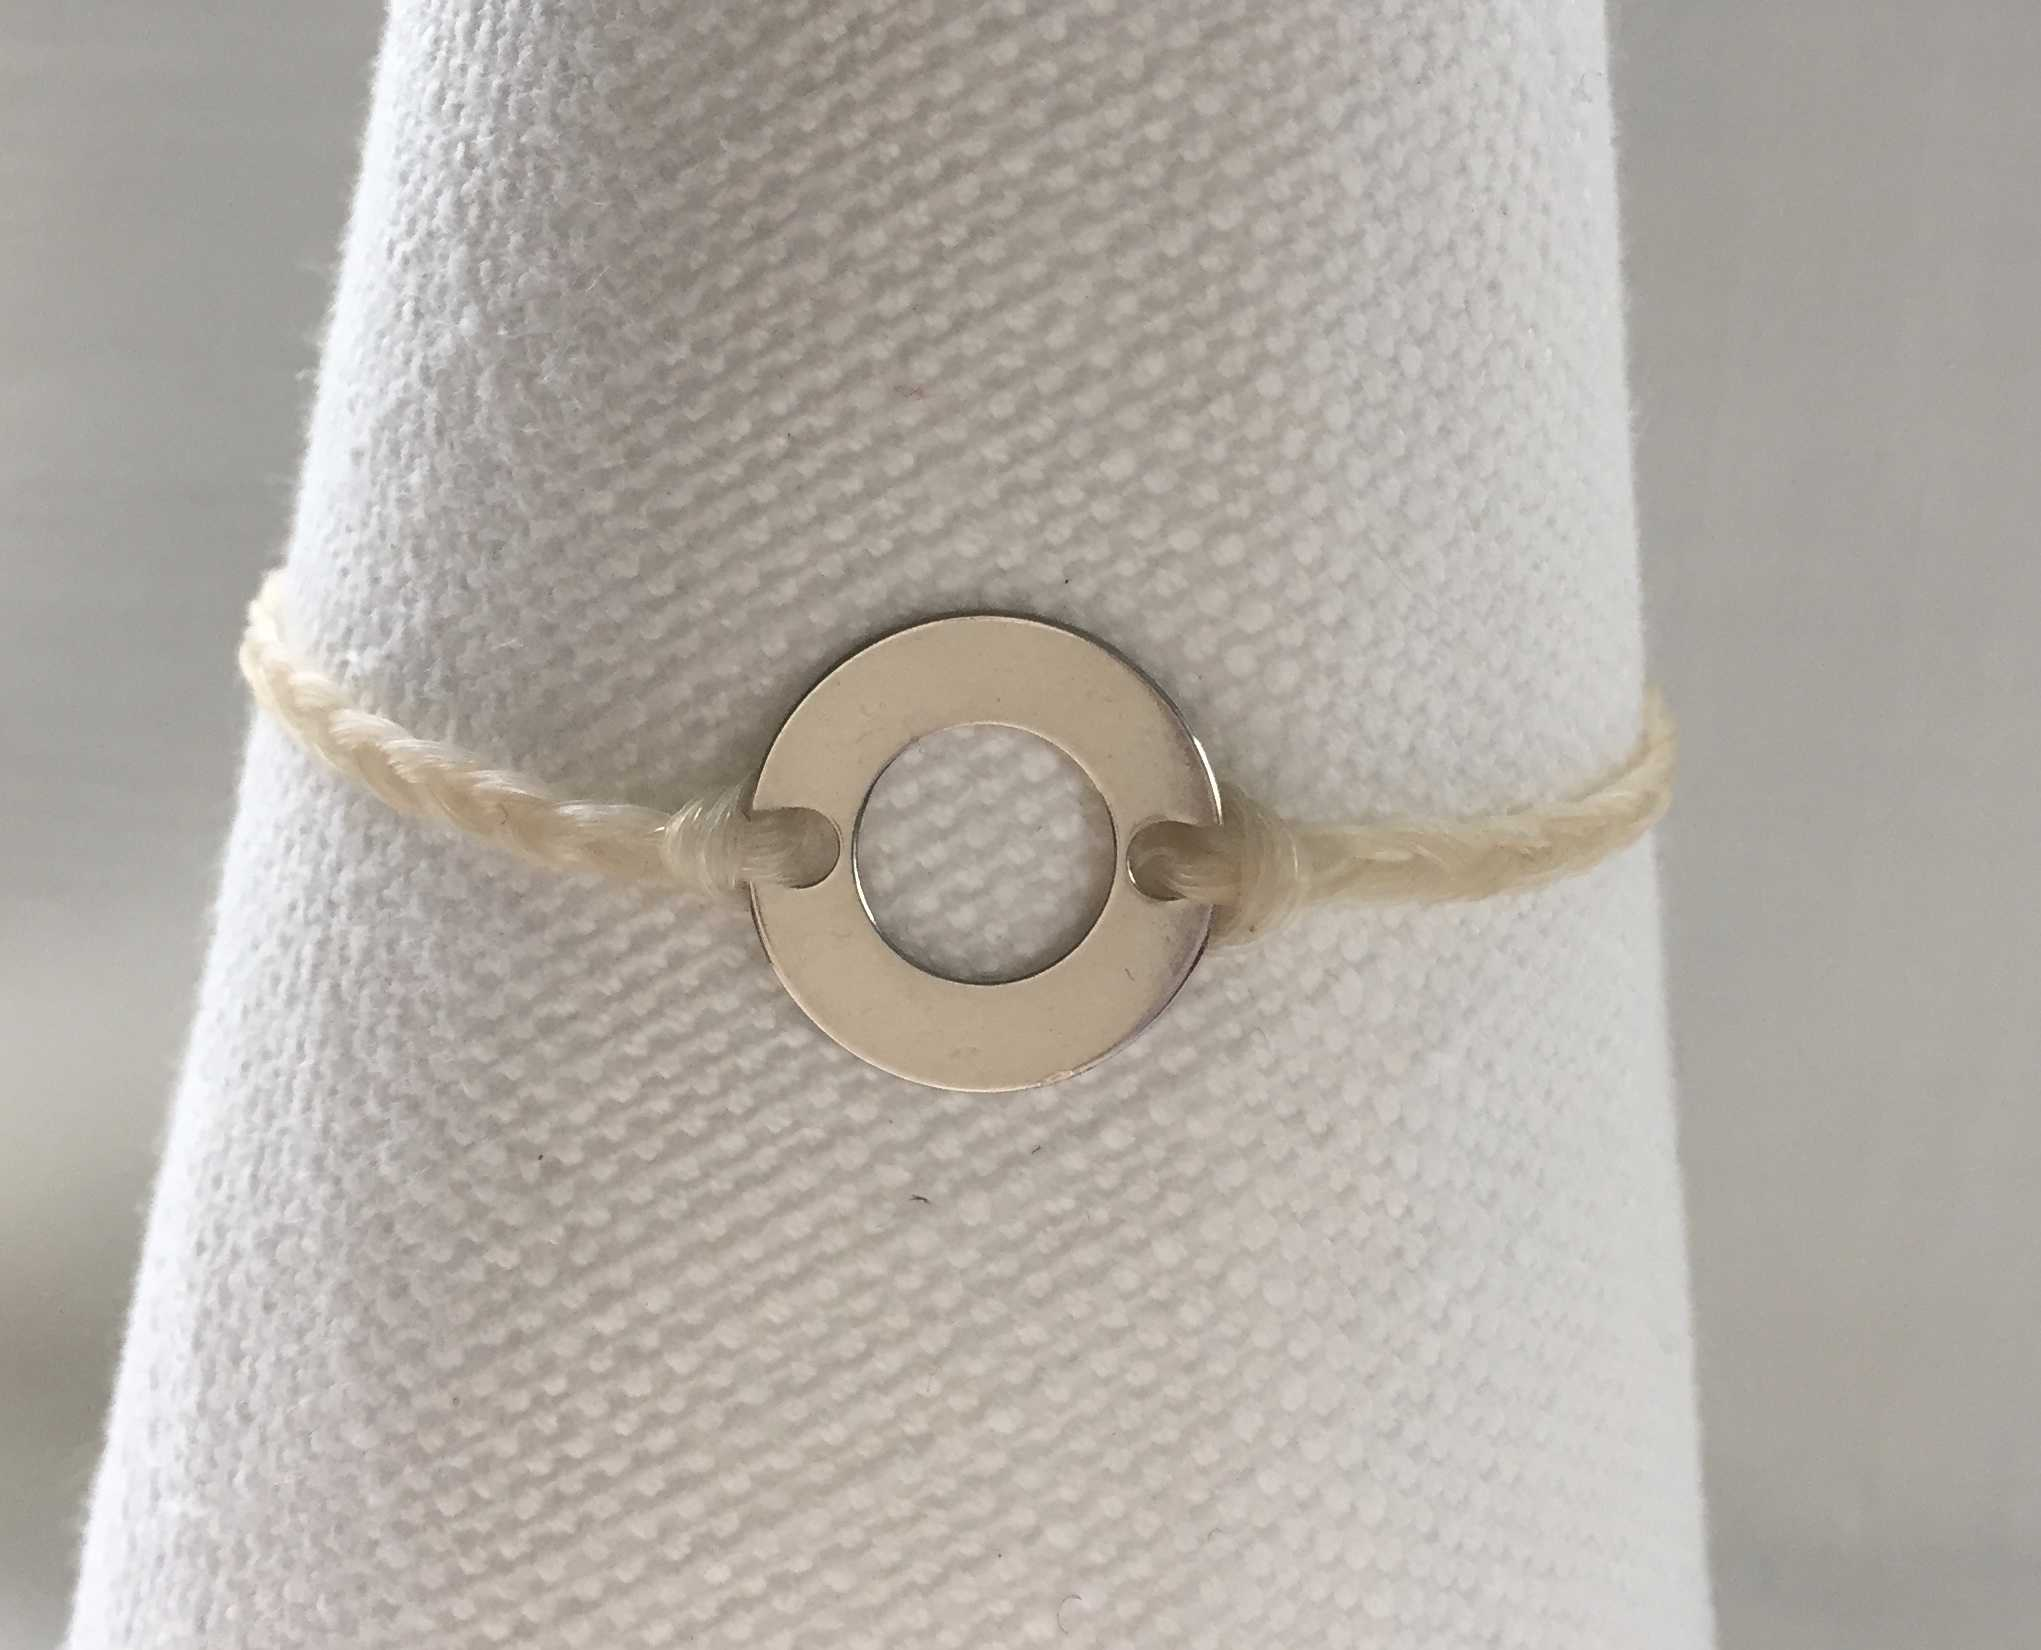 Horse Hair Bracelets with Silver Rings